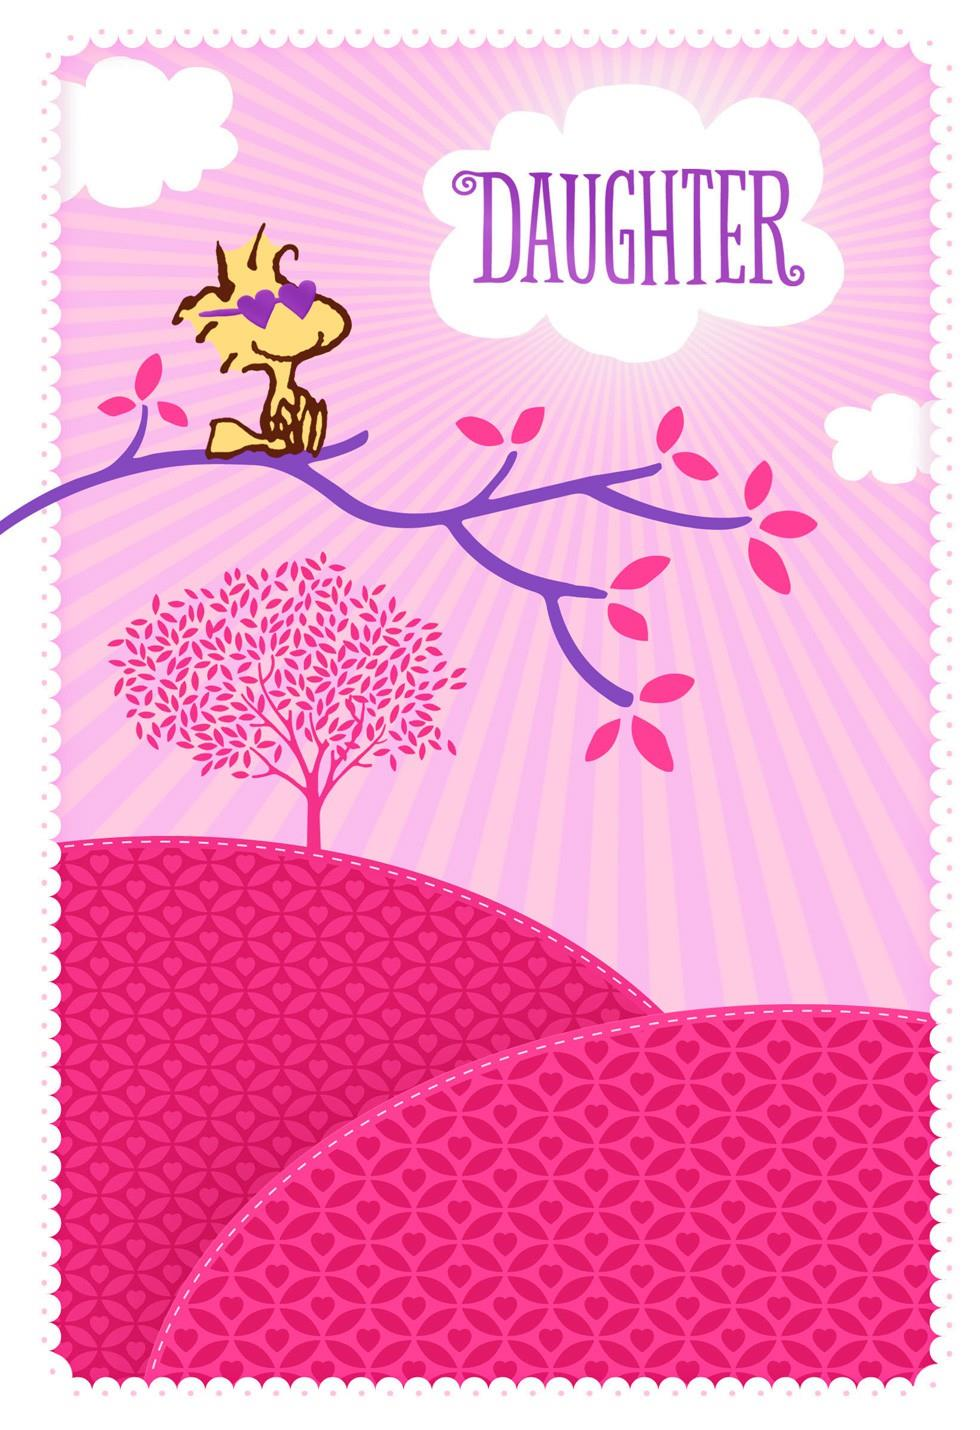 Peanuts Woodstock Sunny Daughter Valentines Day Card  Greeting